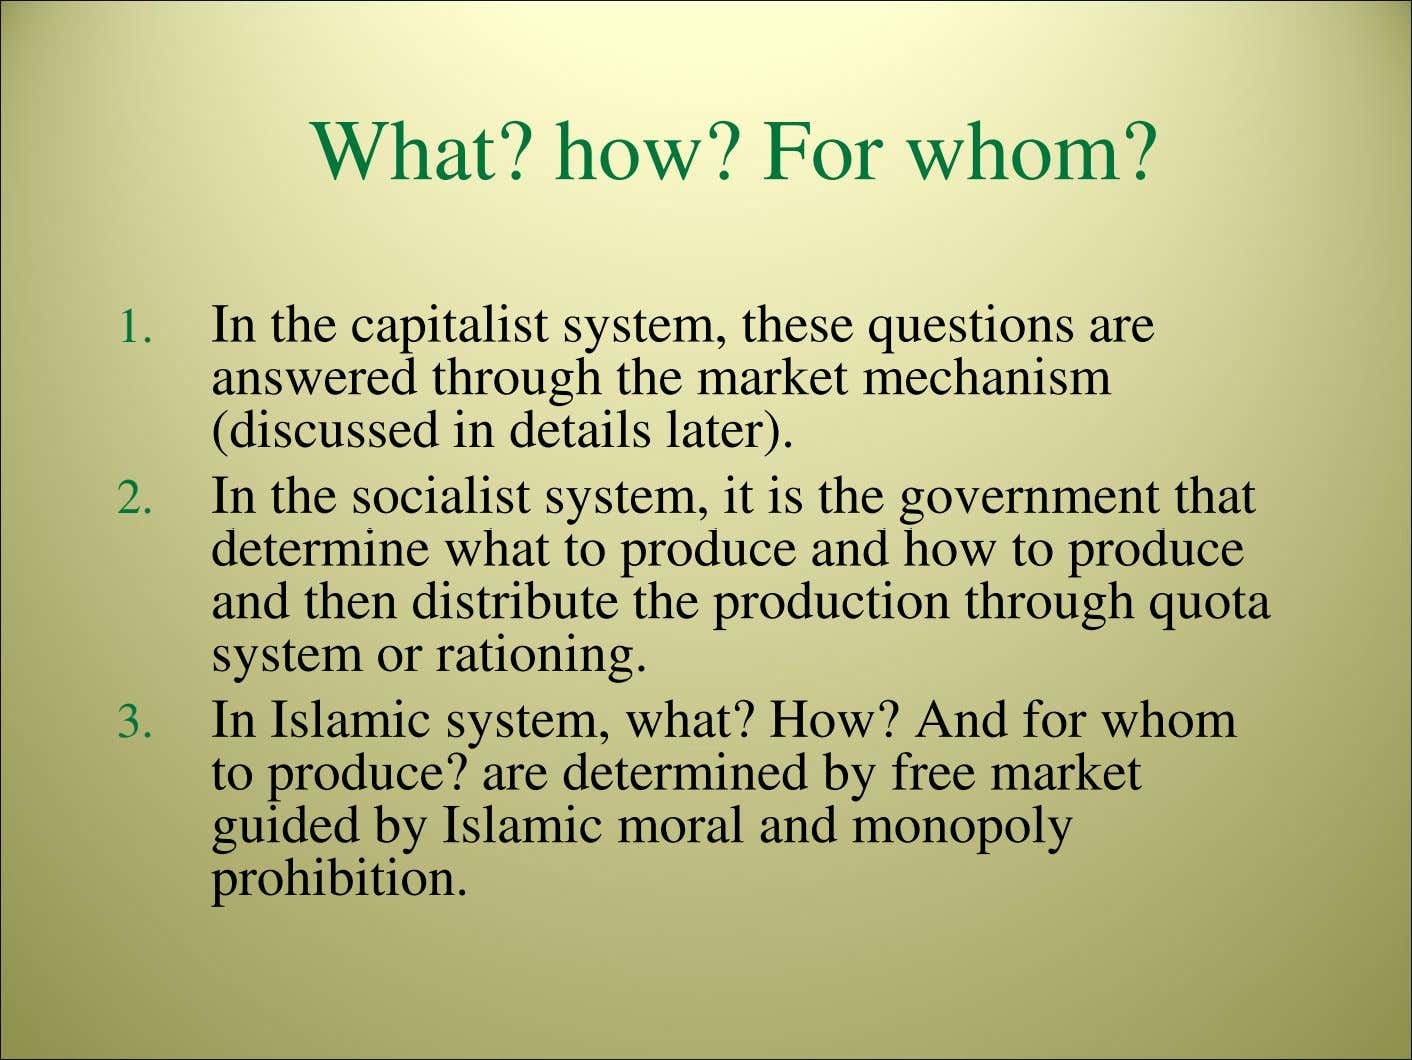 What? how? For whom? 1. In the capitalist system, these questions are answered through the